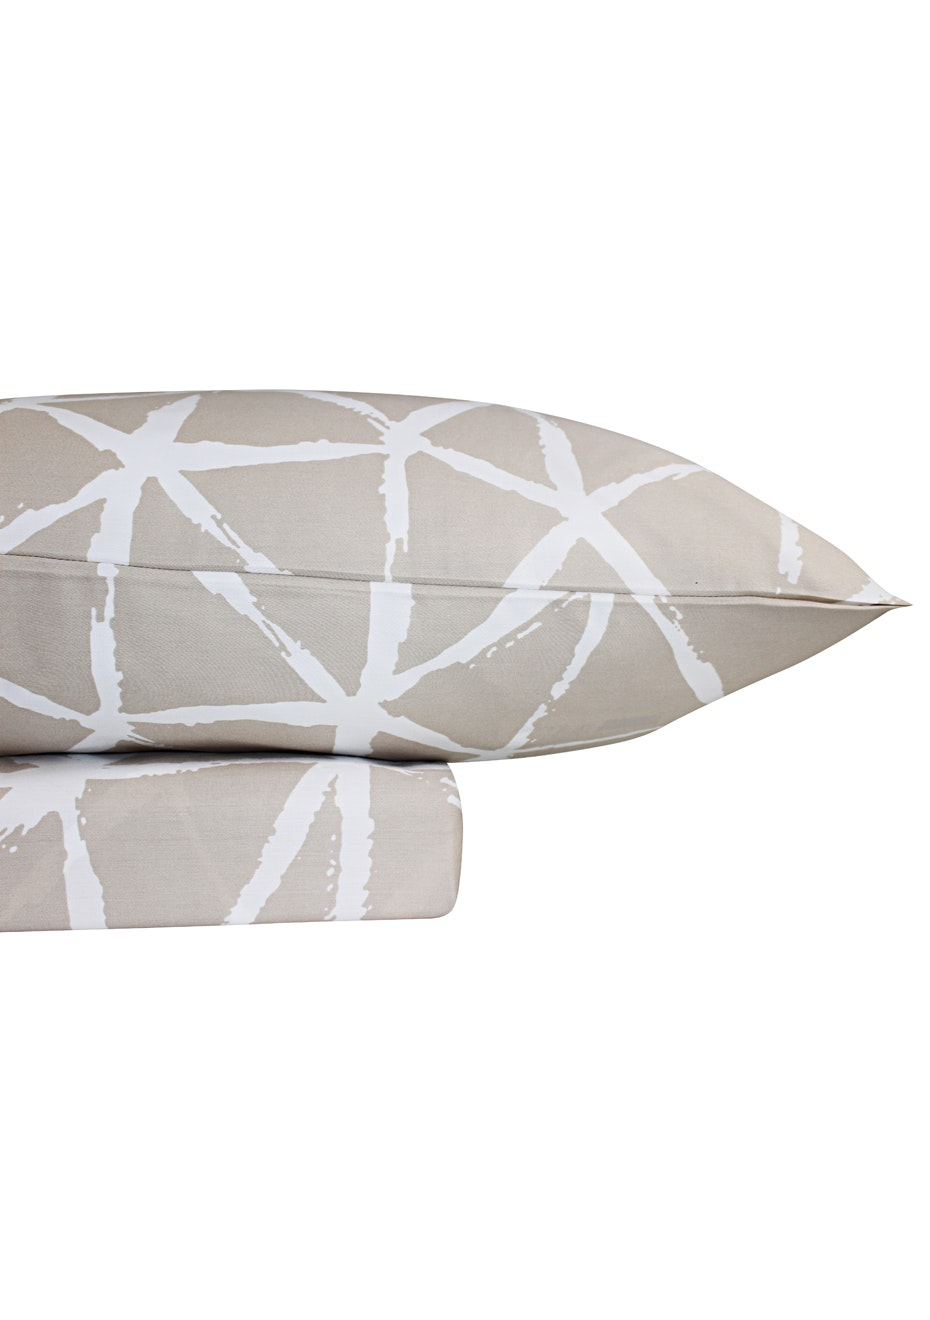 1000 Thread Count – Kyoto Print Sheet Sets - Linen - King Bed